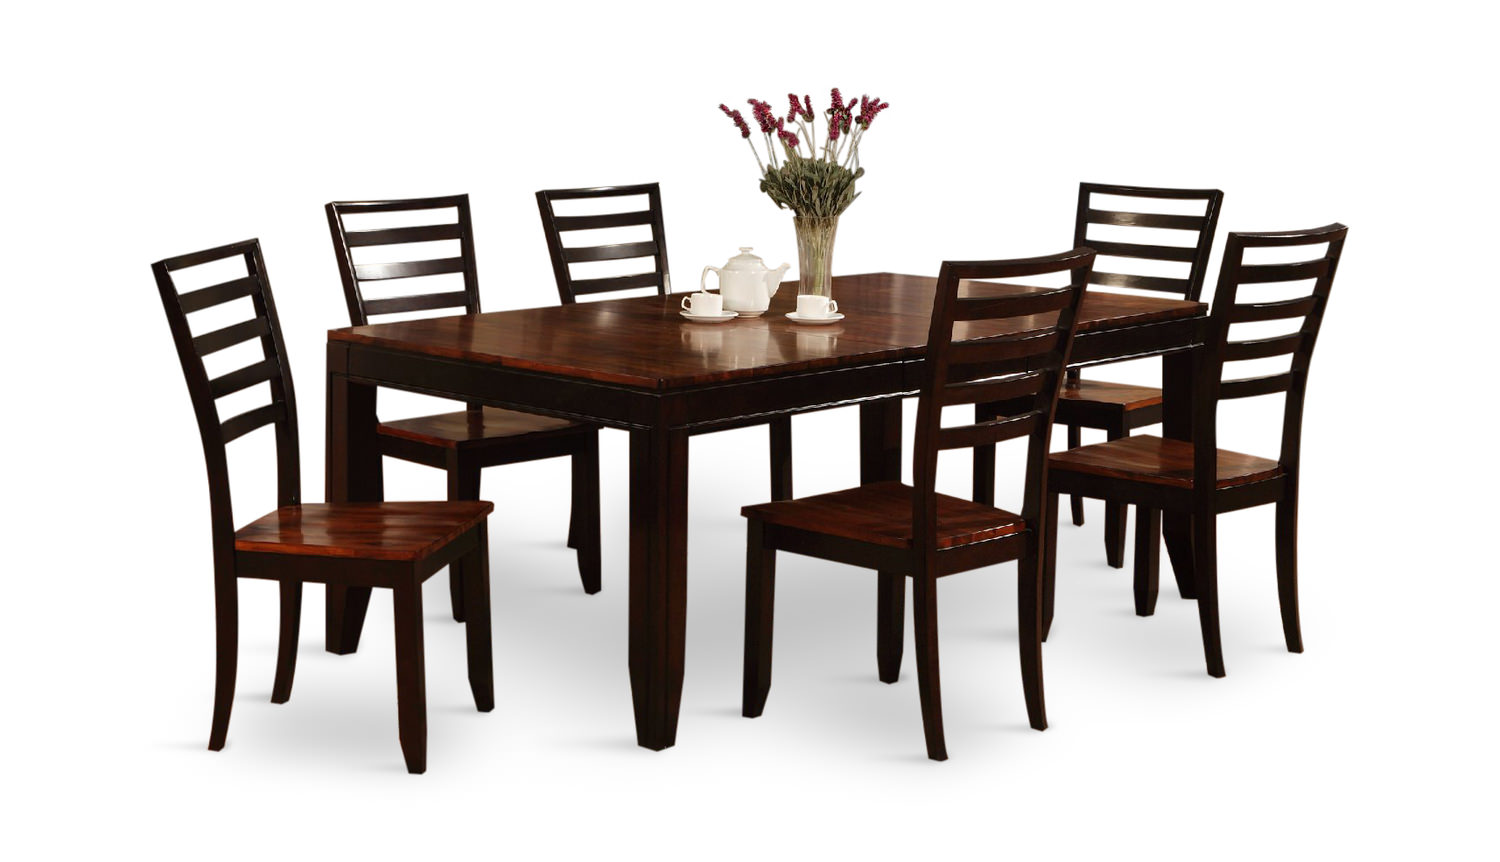 dining sets kitchen dining room sets hom furniture reg 999